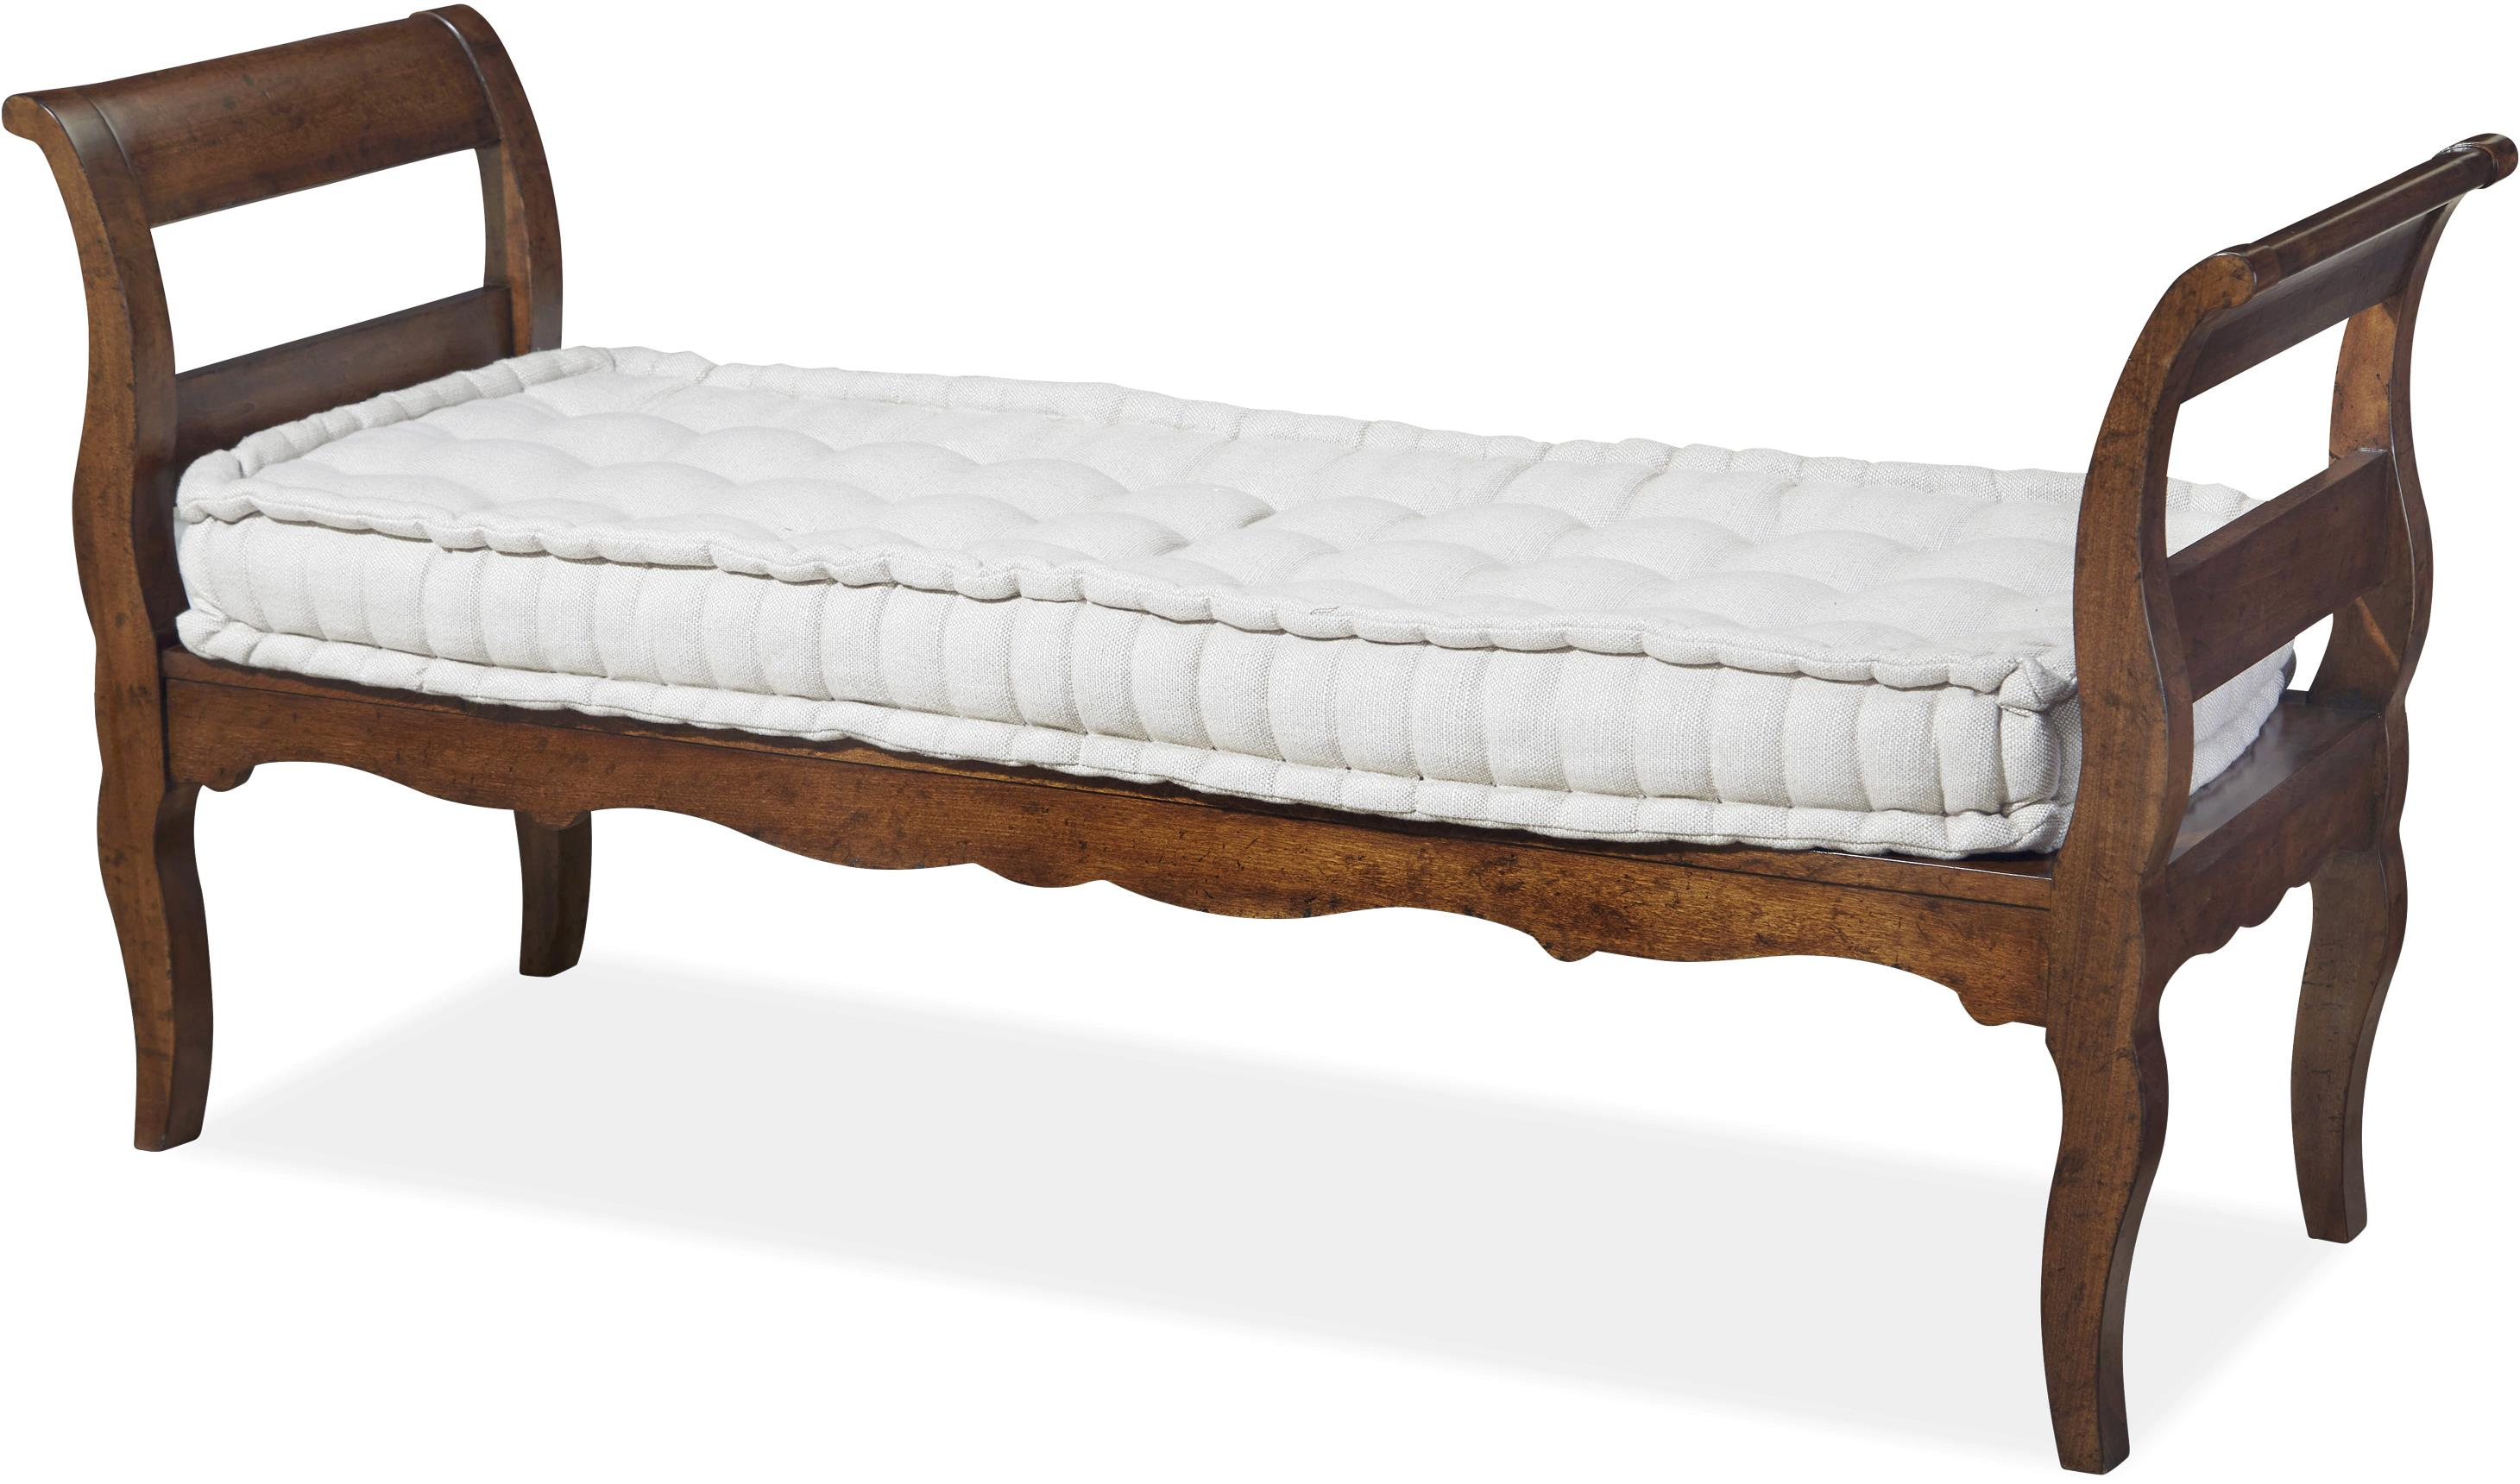 Paula Deen Darling Bed End Bench With Tufted Seat Morris Home Upholstered Benches